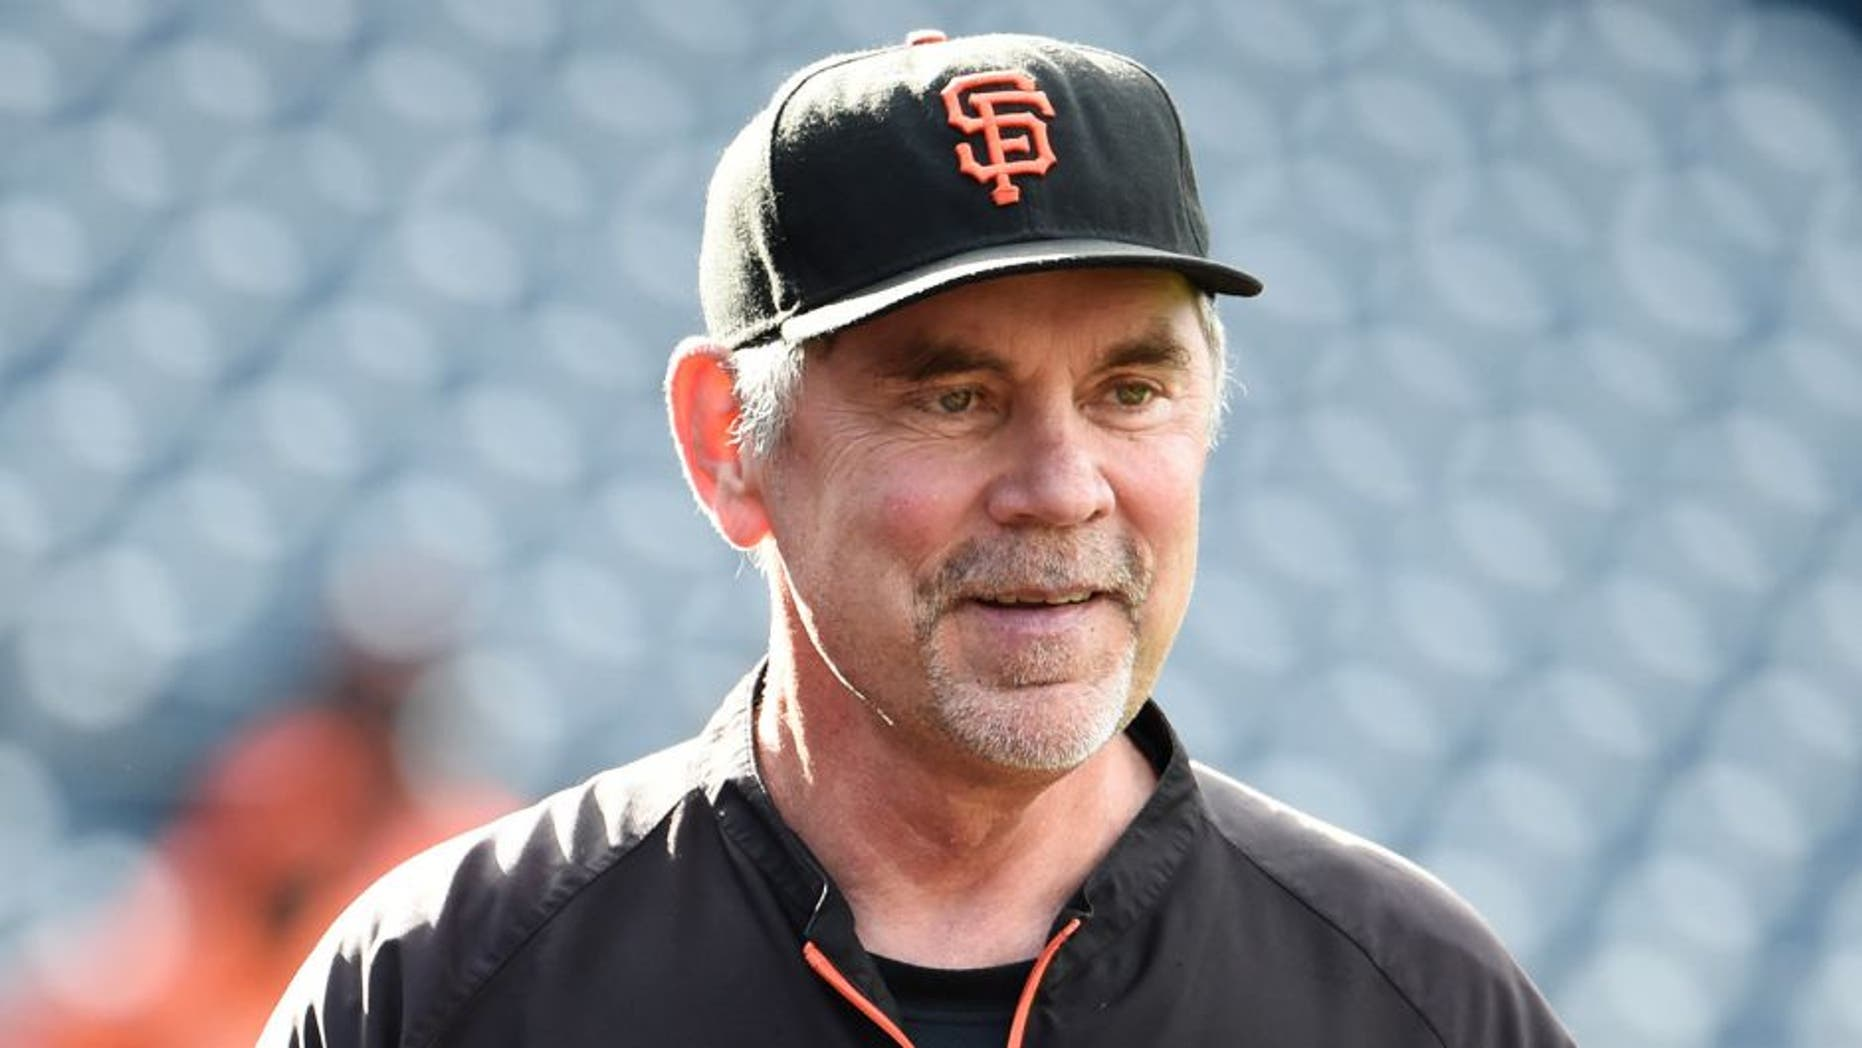 SAN DIEGO, CA - JULY 21: Bruce Bochy #15 of the San Francisco Giants looks on during batting practice before a baseball game against the San Diego Padres at Petco Park July 21, 2015 in San Diego, California. (Photo by Denis Poroy/Getty Images)